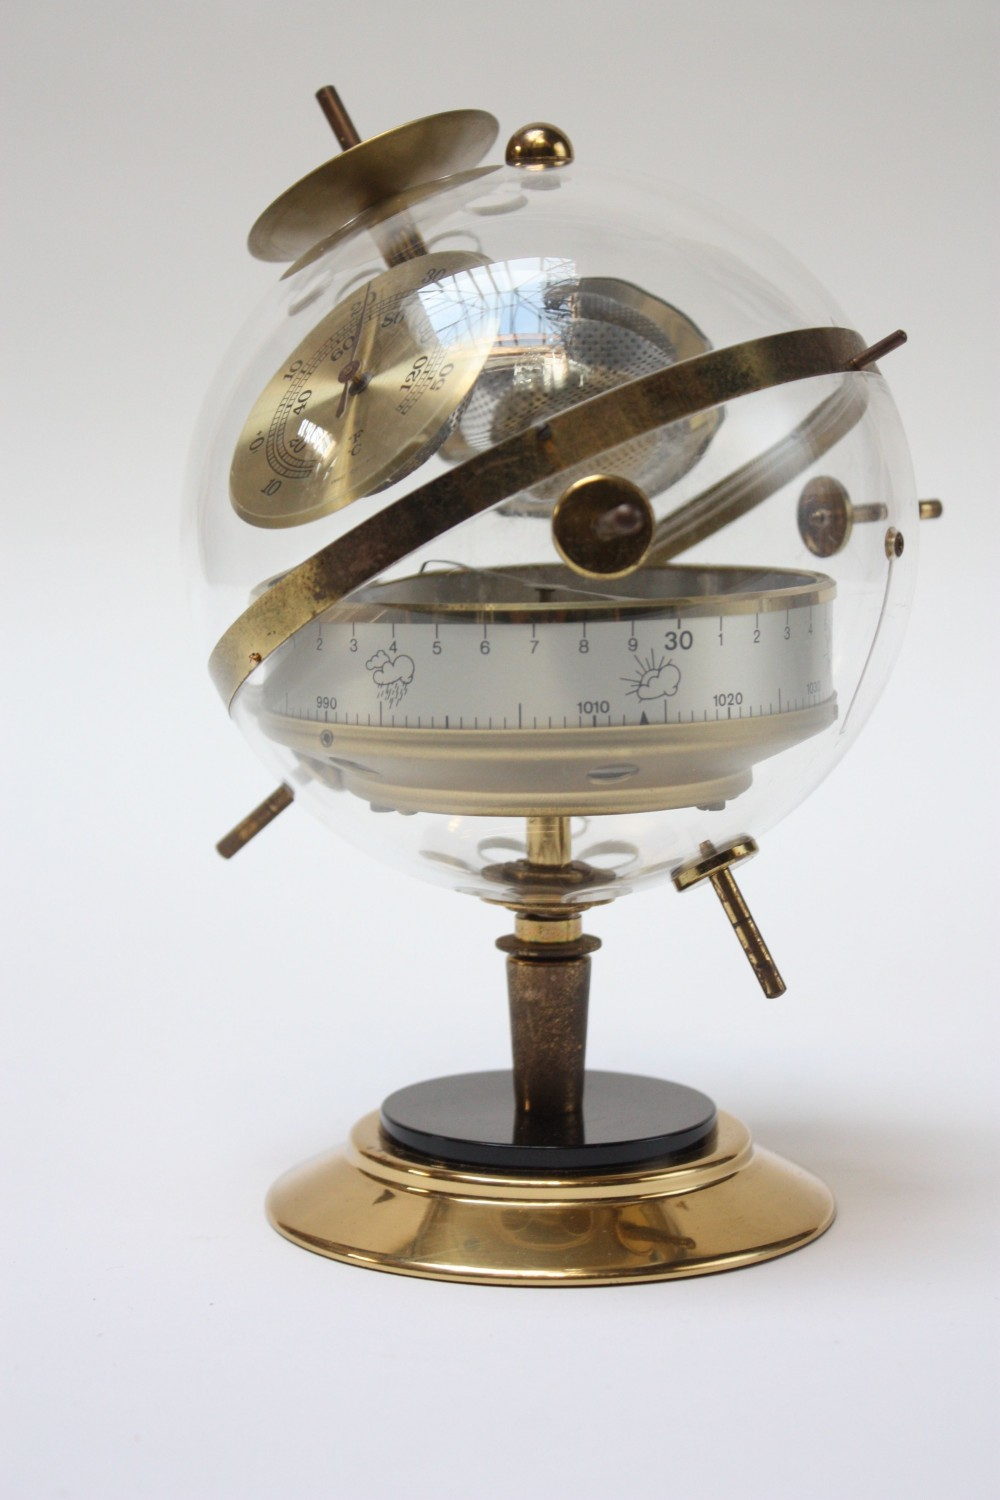 1960s West German Huger Sputnik Barometer Weather